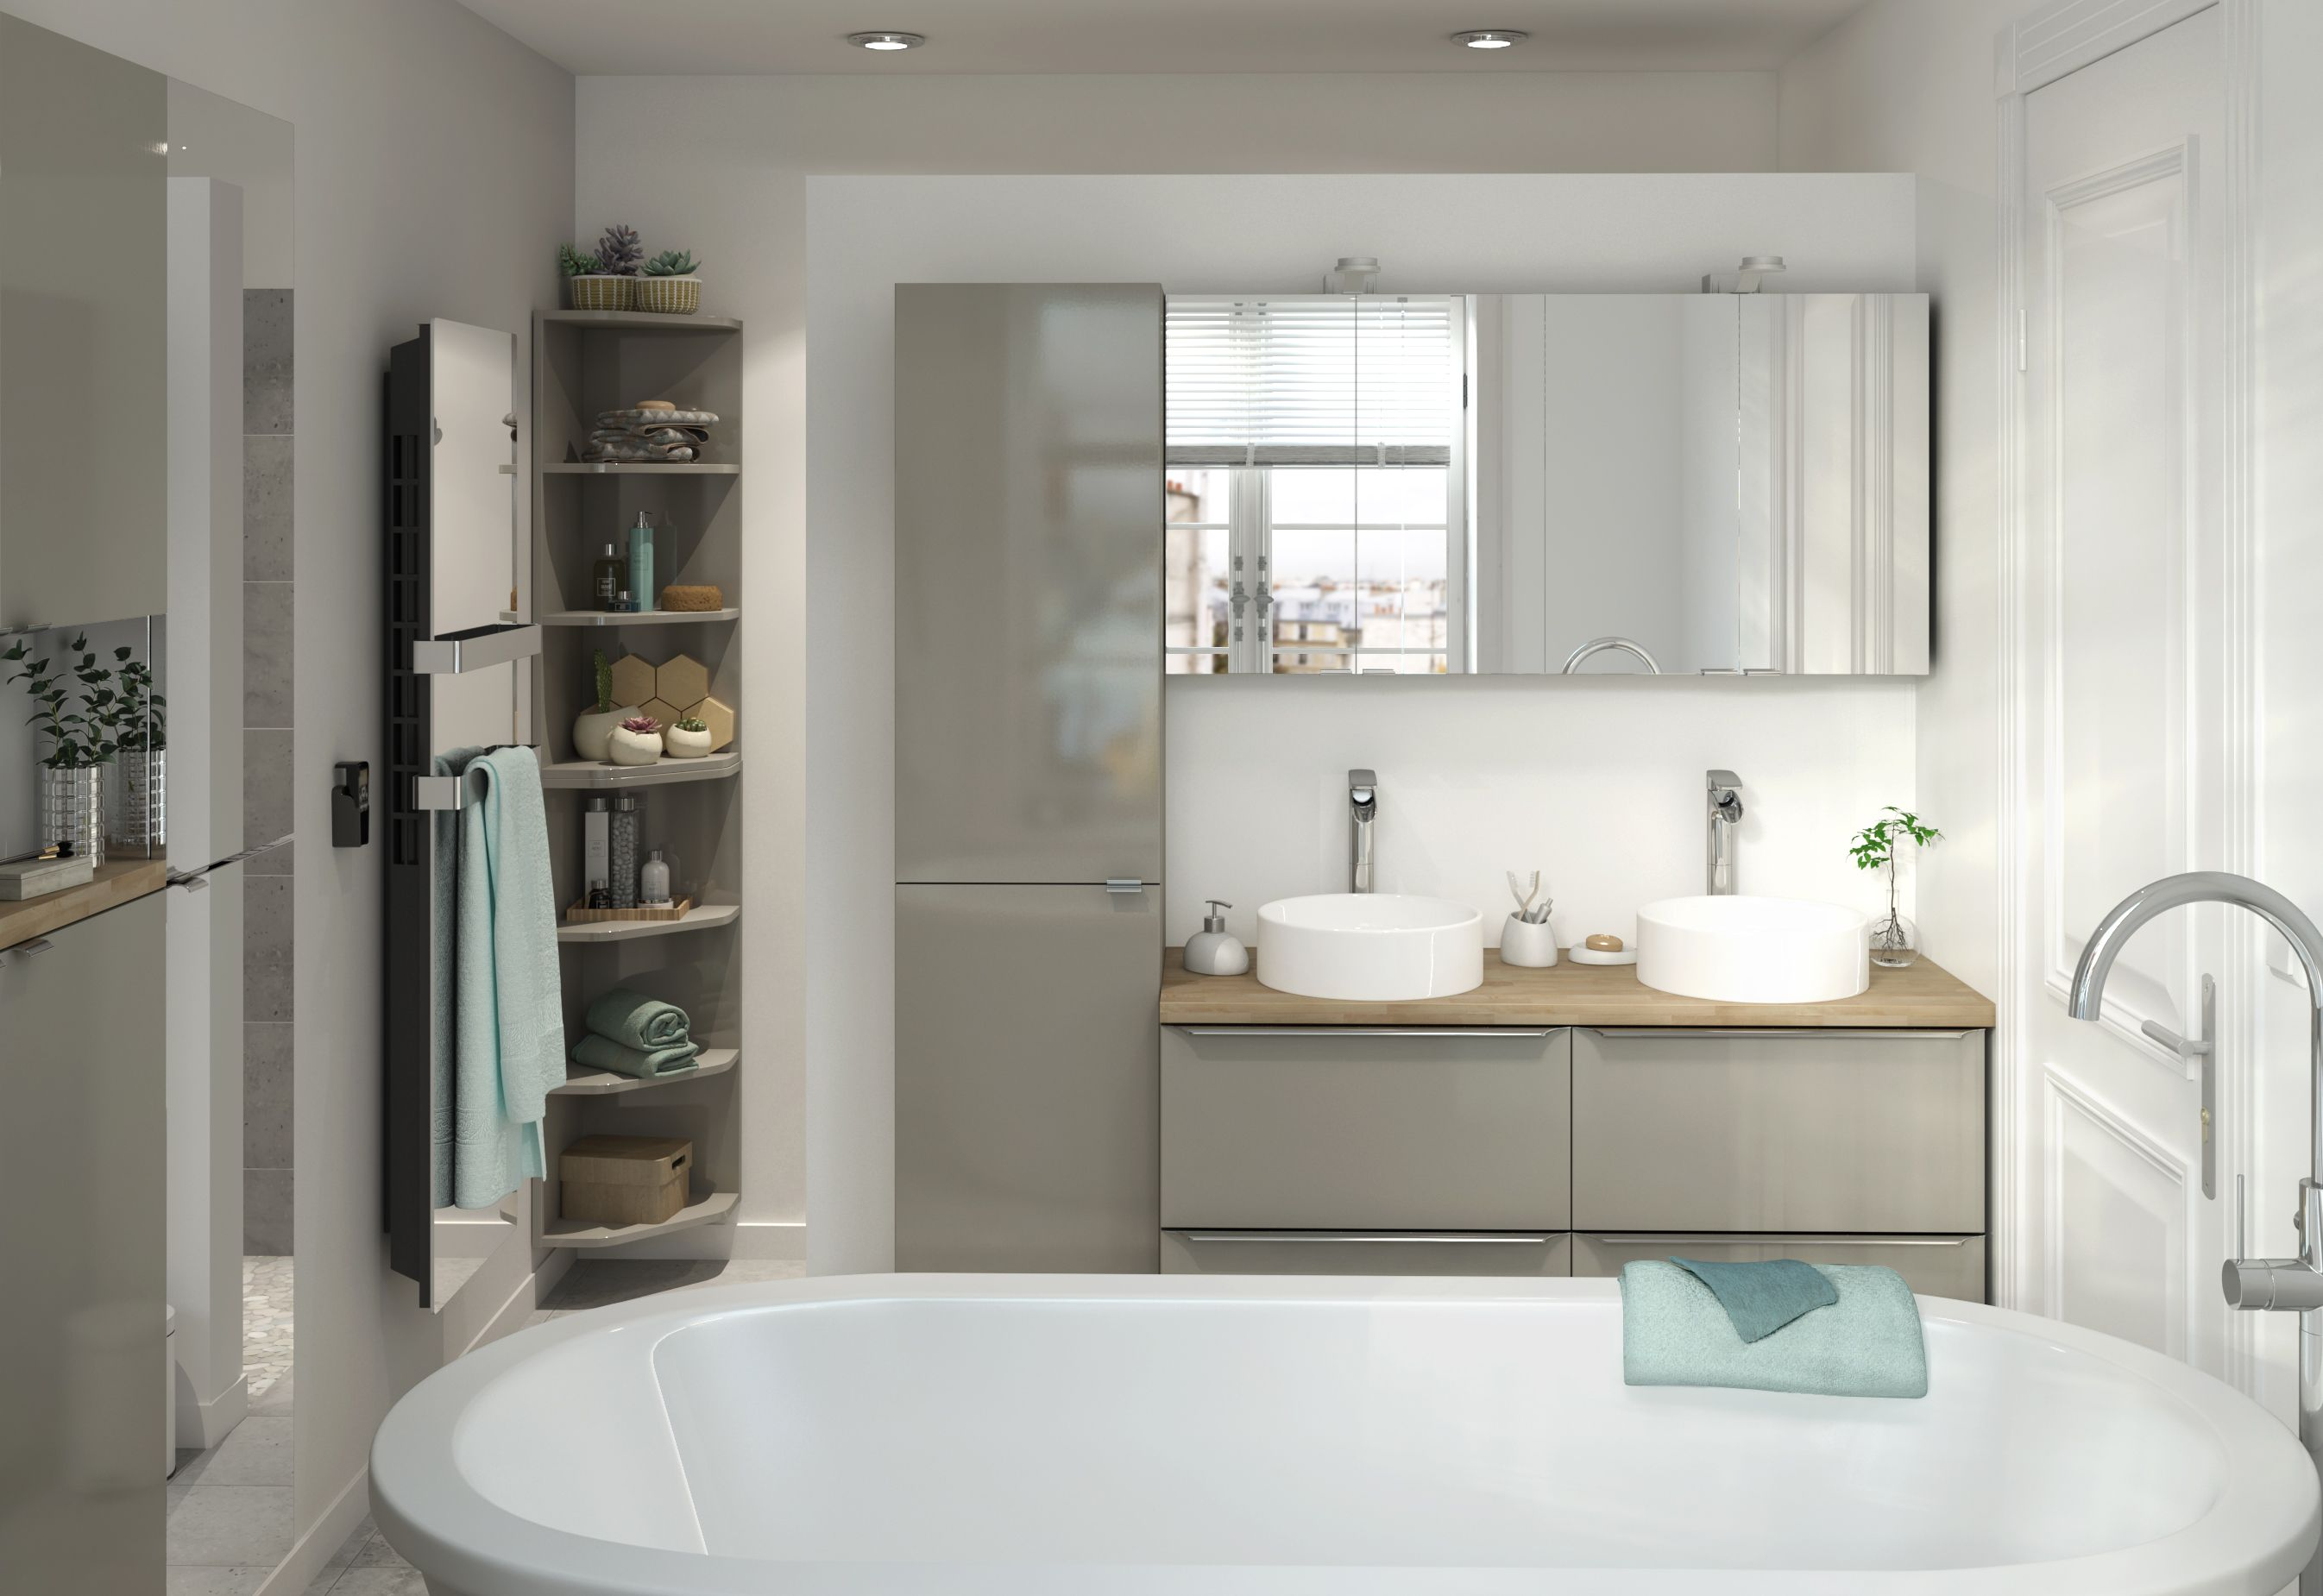 The Imandra Bathroom Range From B Q Is Available In A Selection Of Shapes And Sizes To Fit An Bathroom Design Luxury Stylish Bathroom Bathroom Cabinets Designs